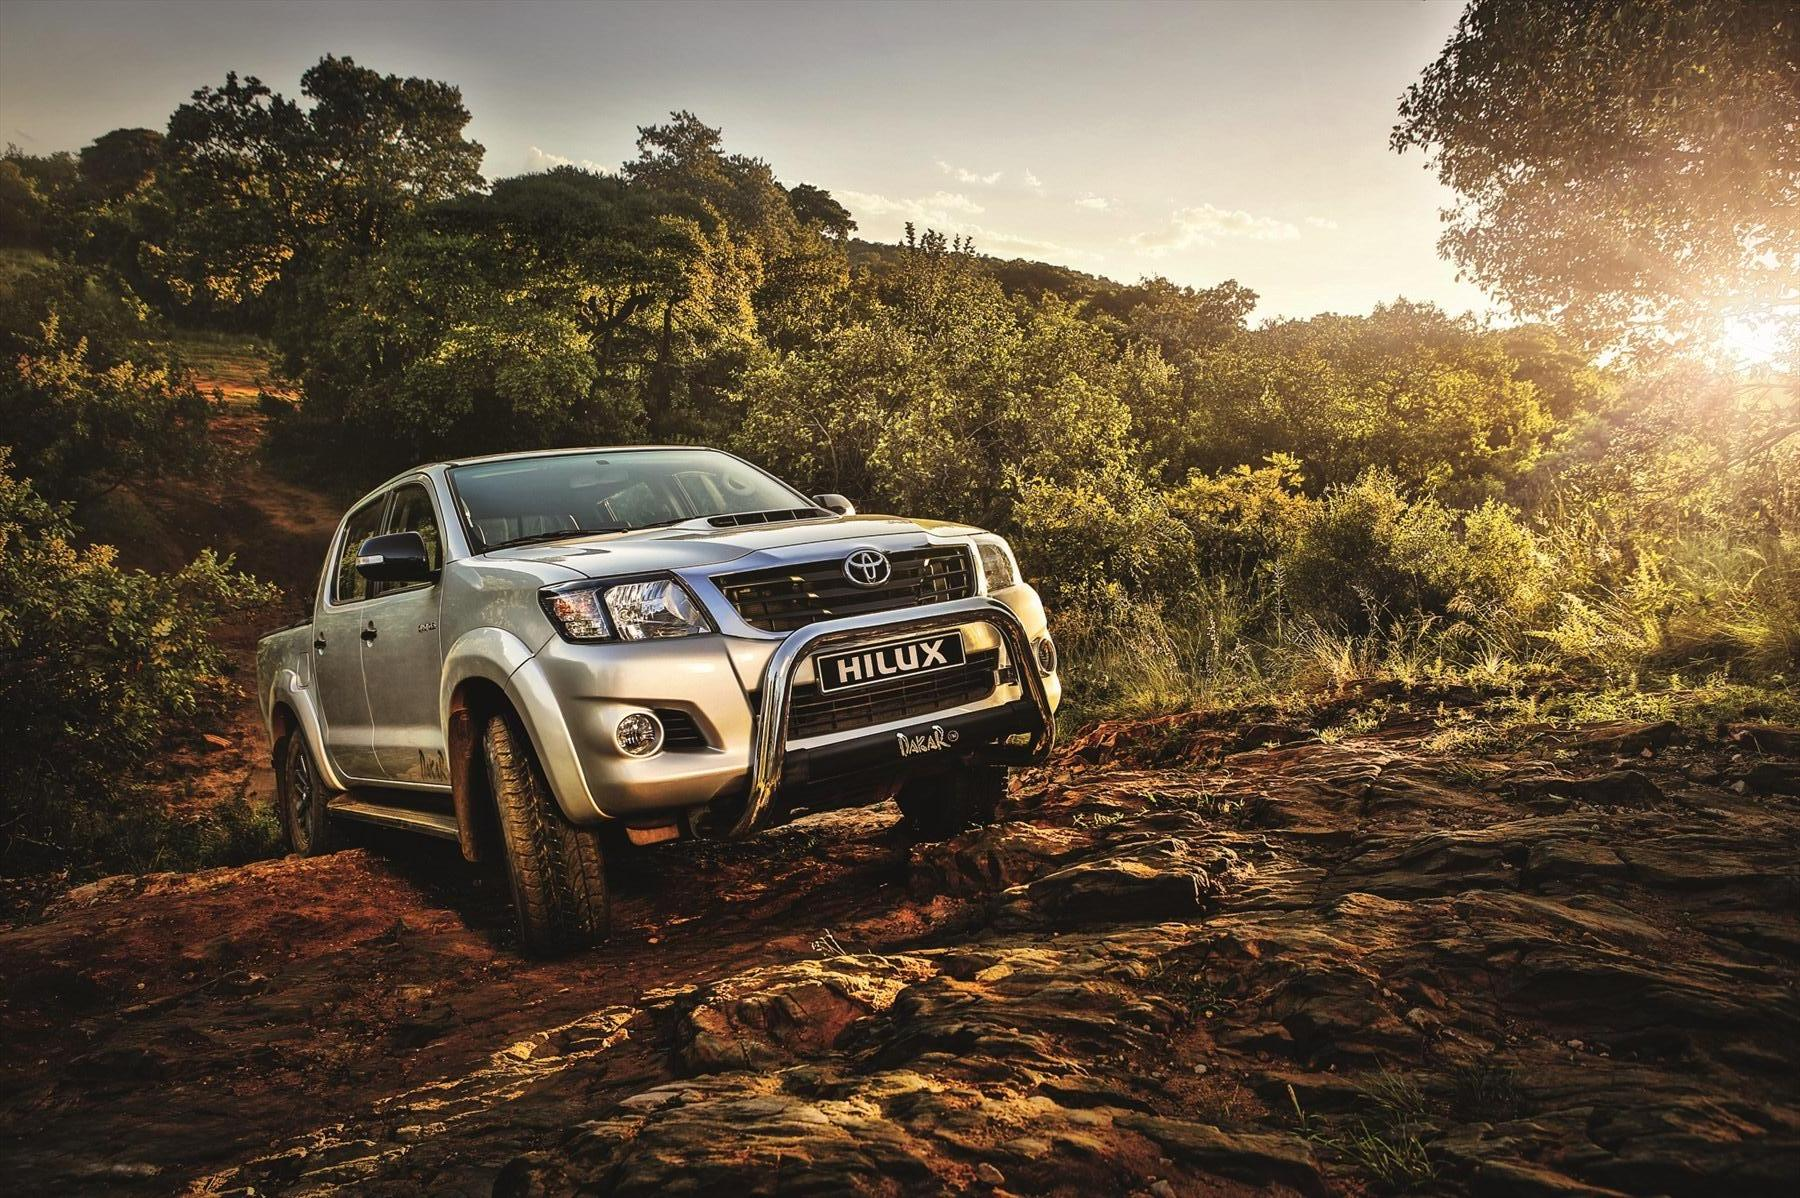 COOL TOYOTA HILUX HD WALLPAPERS